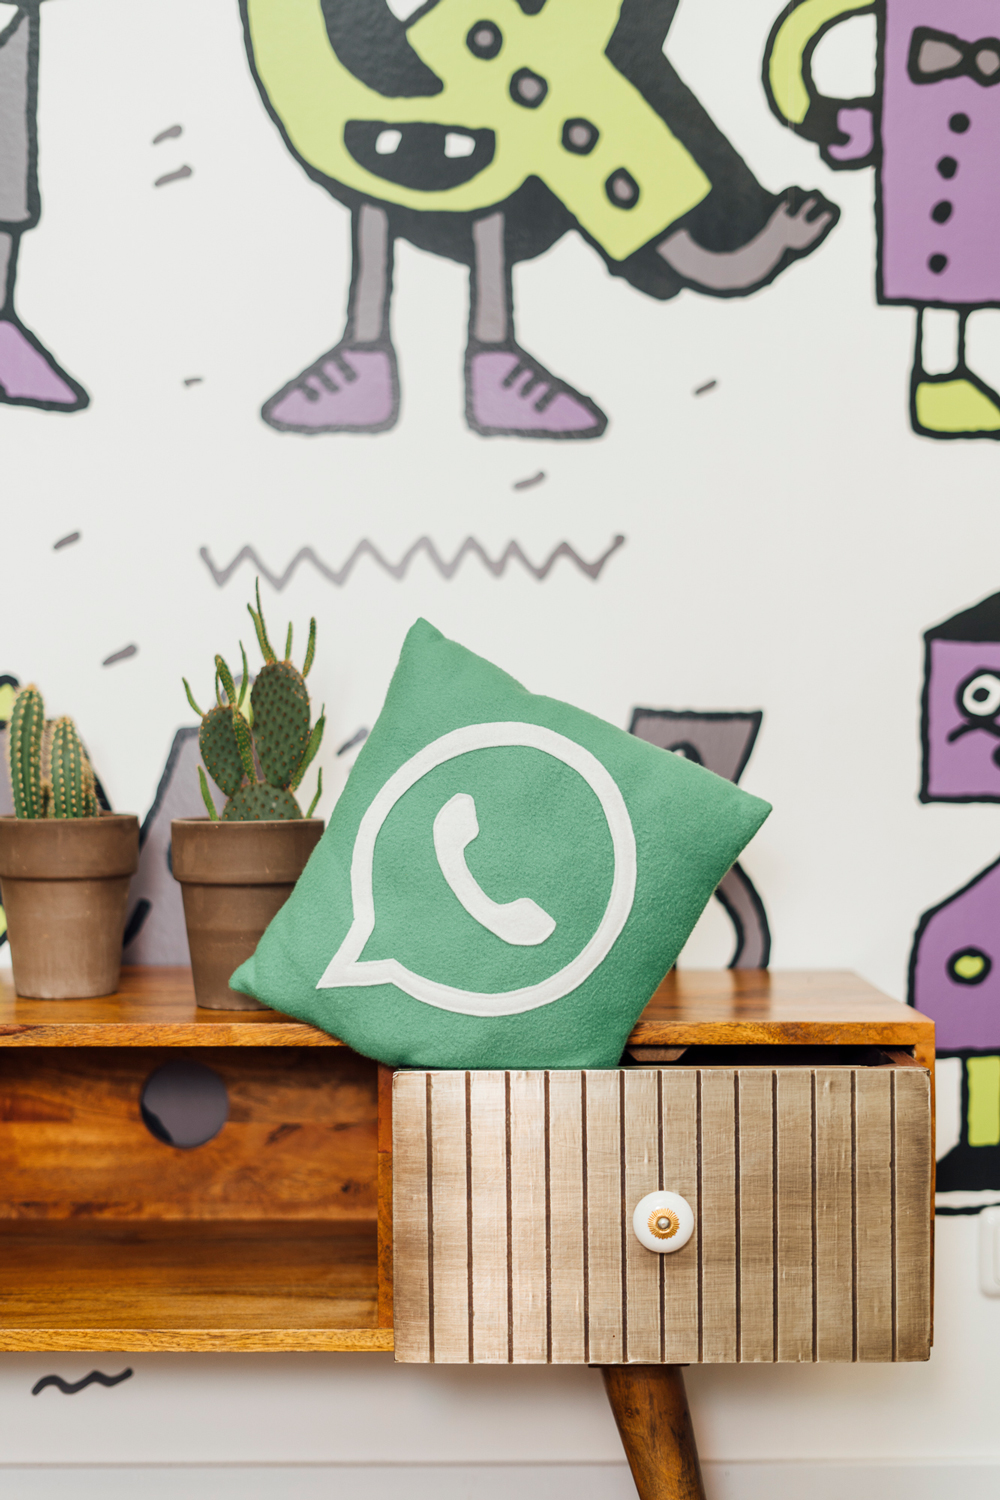 WhatsApp Marketing Agentur aus Berlin